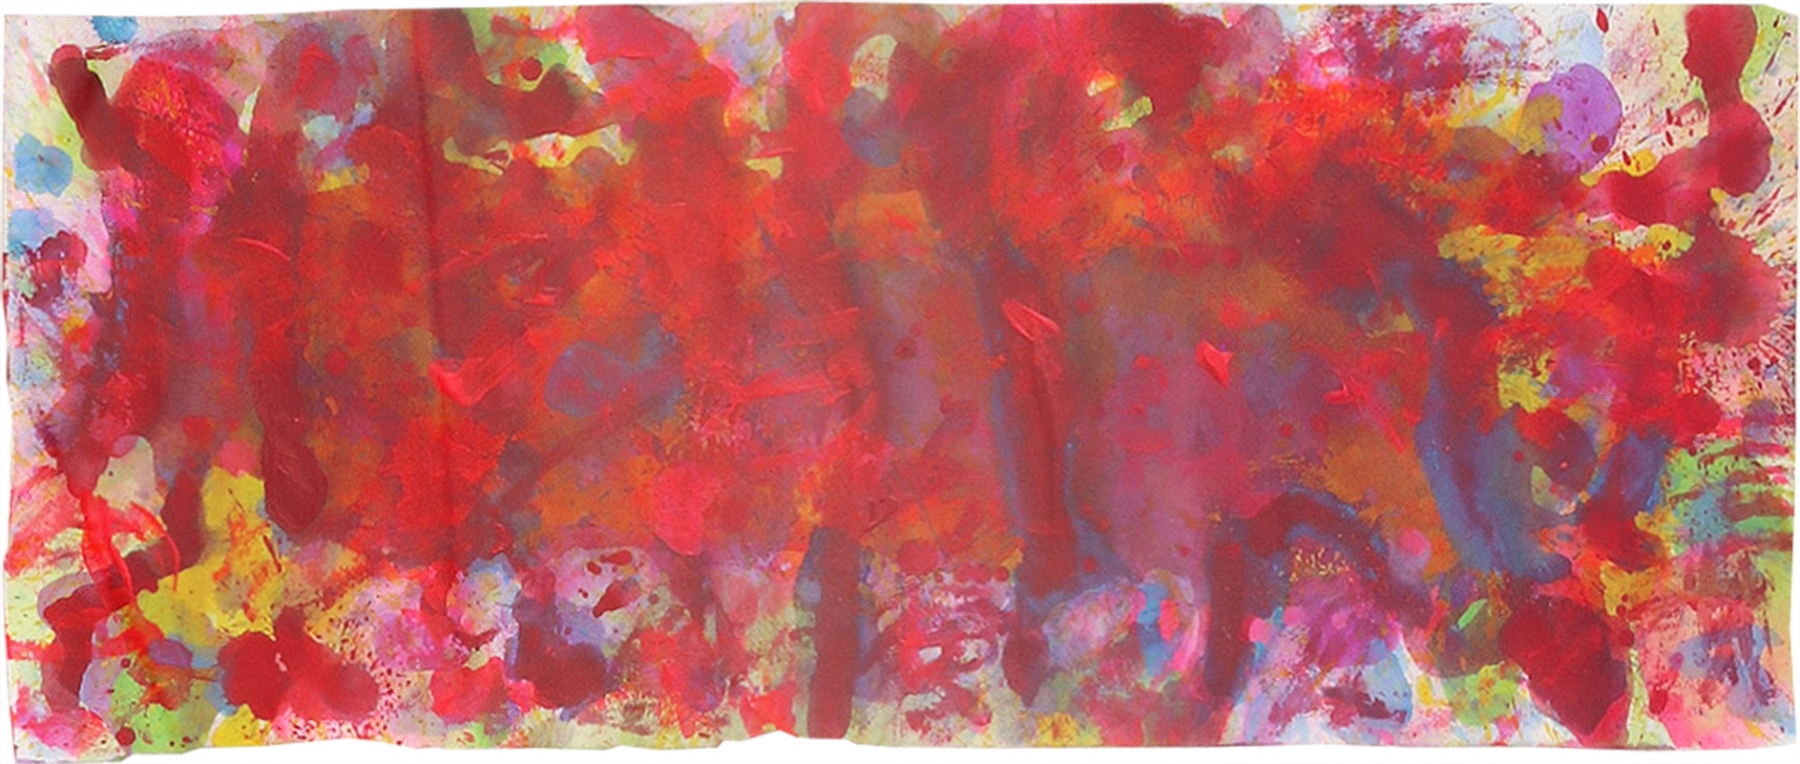 J. Steven Manolis, REDWORLD-Extravaganza, 2015, Acrylic and watercolor on paper, 9.5 x 23.5 inches(with-frame), Framed size 15.625 x 30.25 inches, Red Abstract Art, Abstract expressionism art for sale at Manolis Projects Art Gallery, Miami, Fl